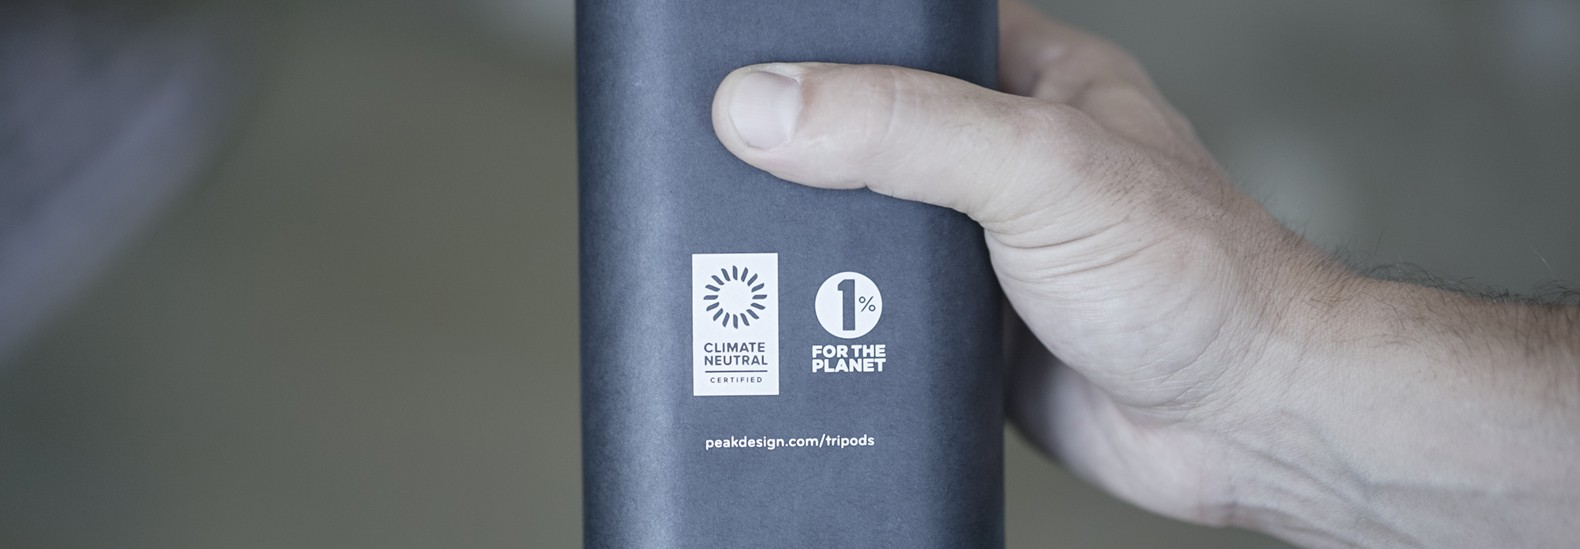 Climate Neutral Certification labels products with minimized carbon footprints